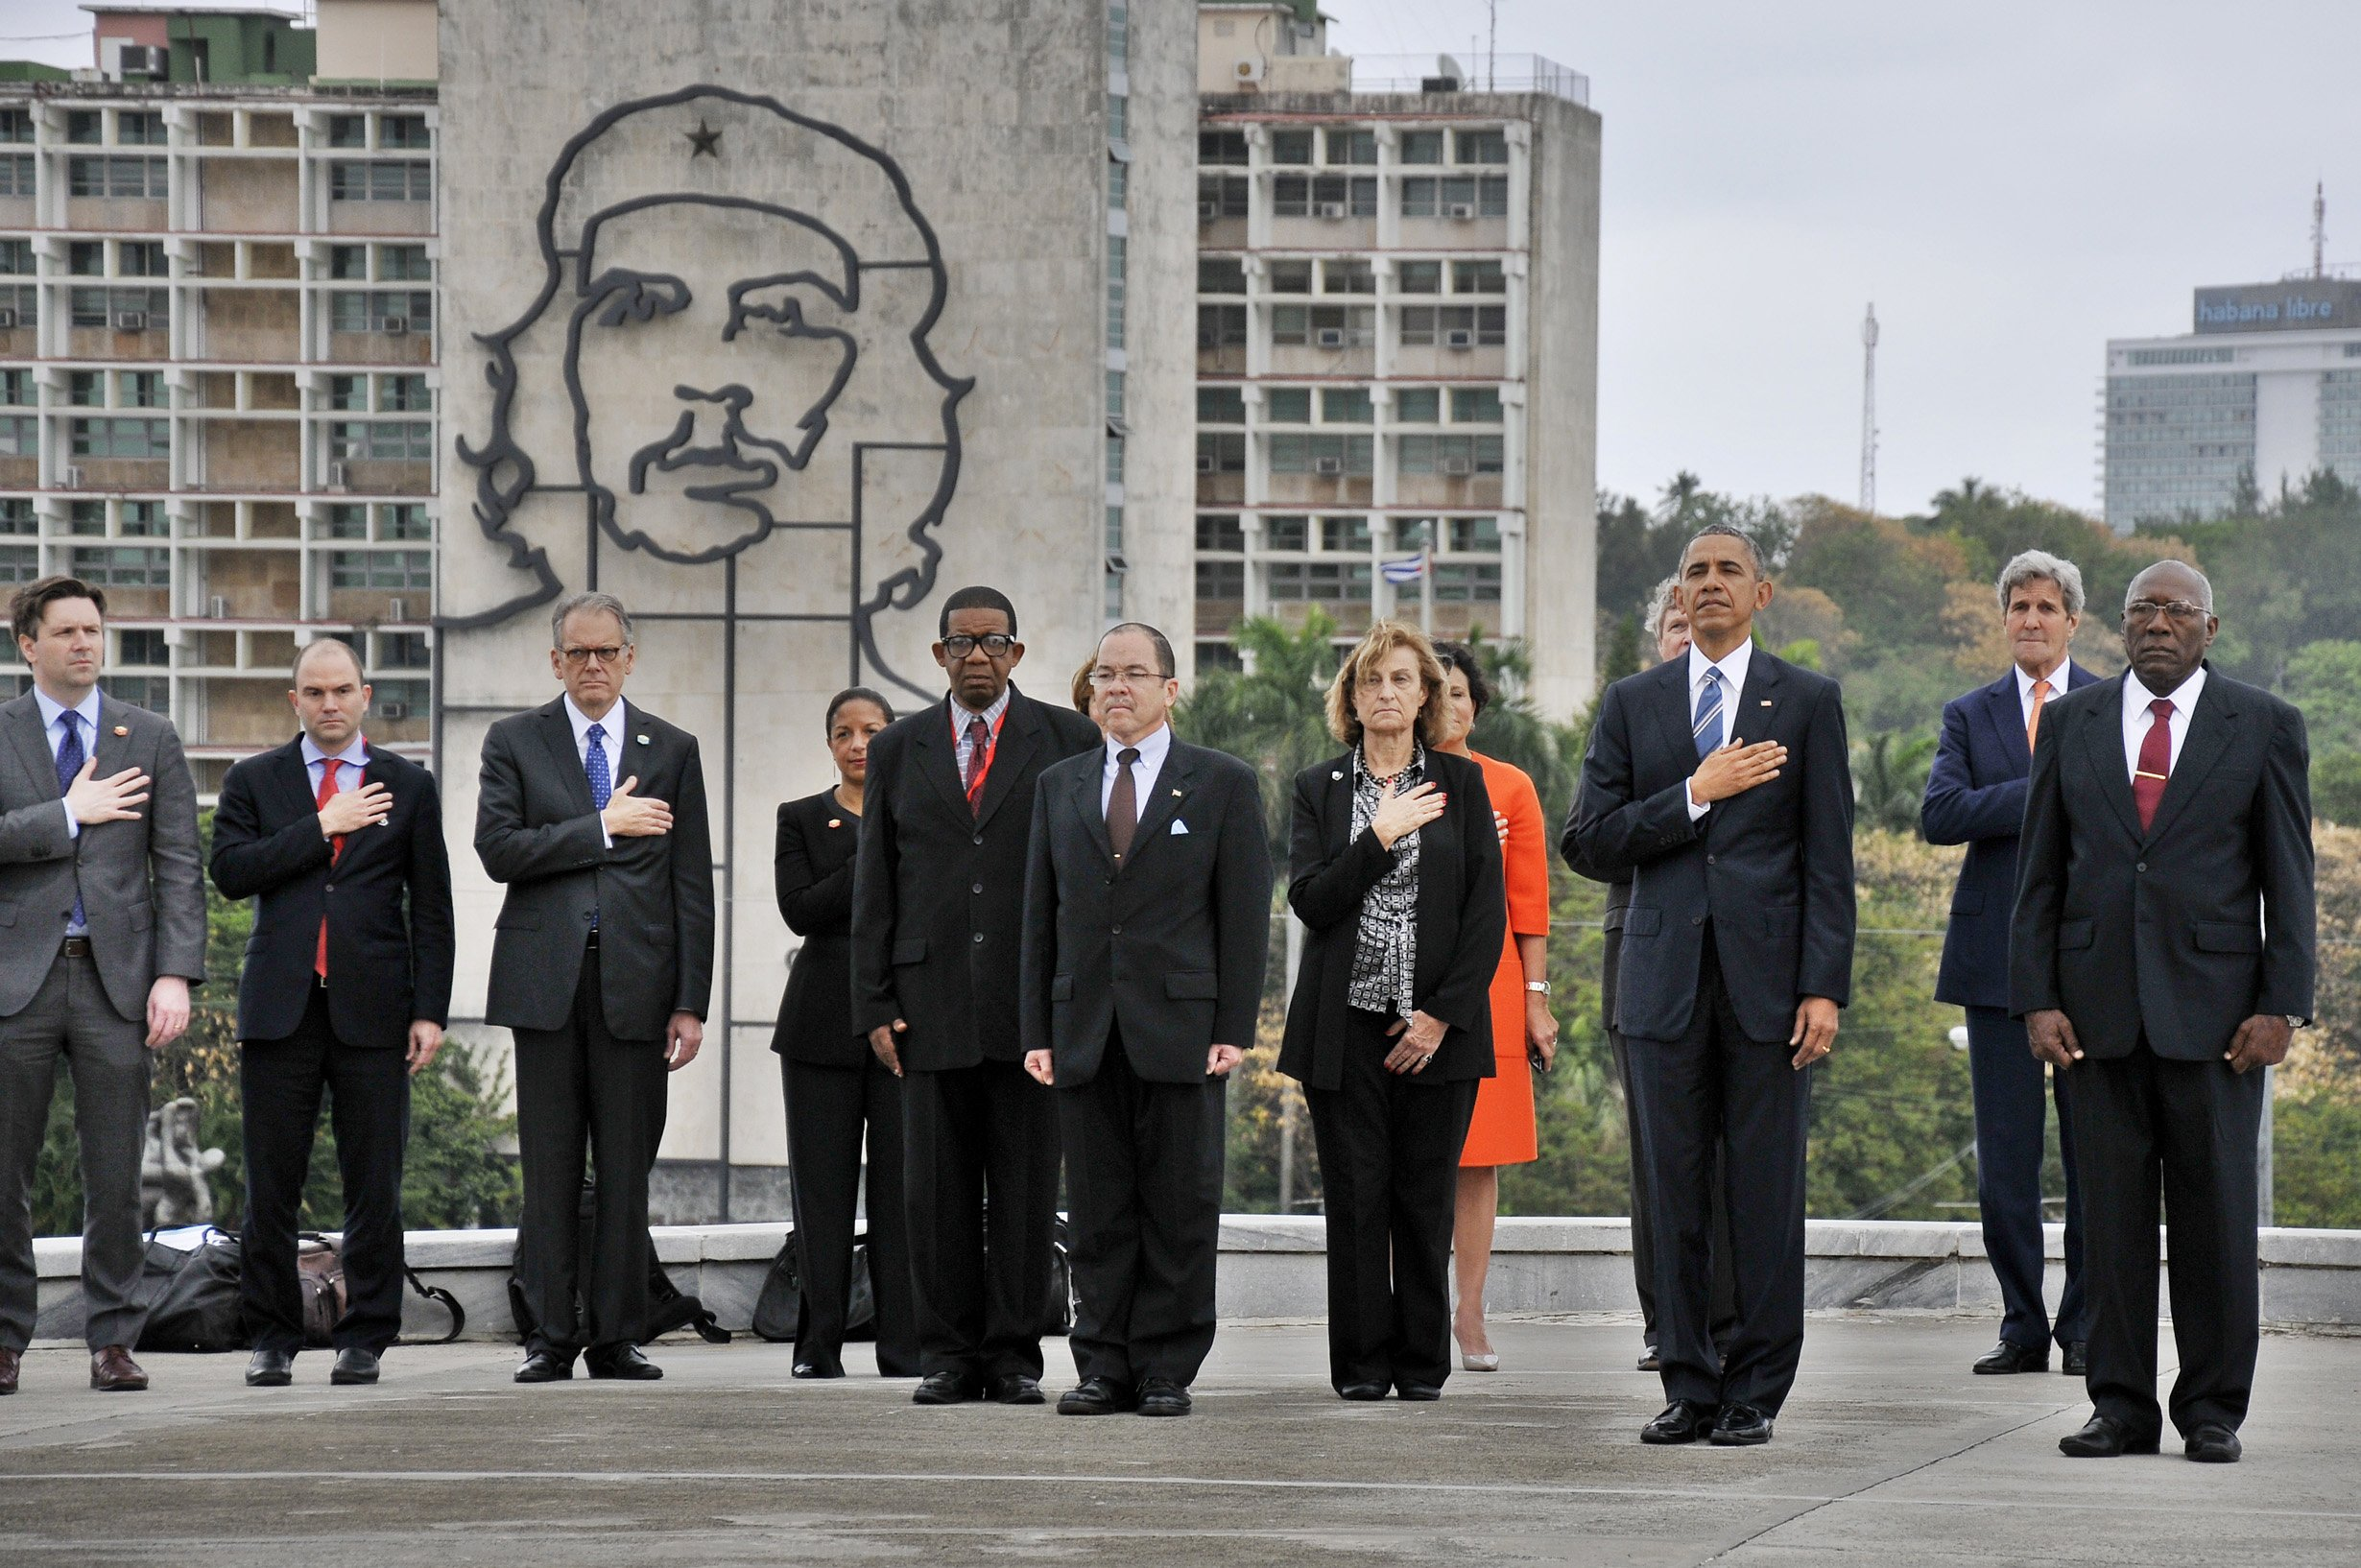 President Obama and Salvador Valdes Mesa (R) pay tribute to Jose Marti at the Revolution Square in Havana, on March 21, 2016.